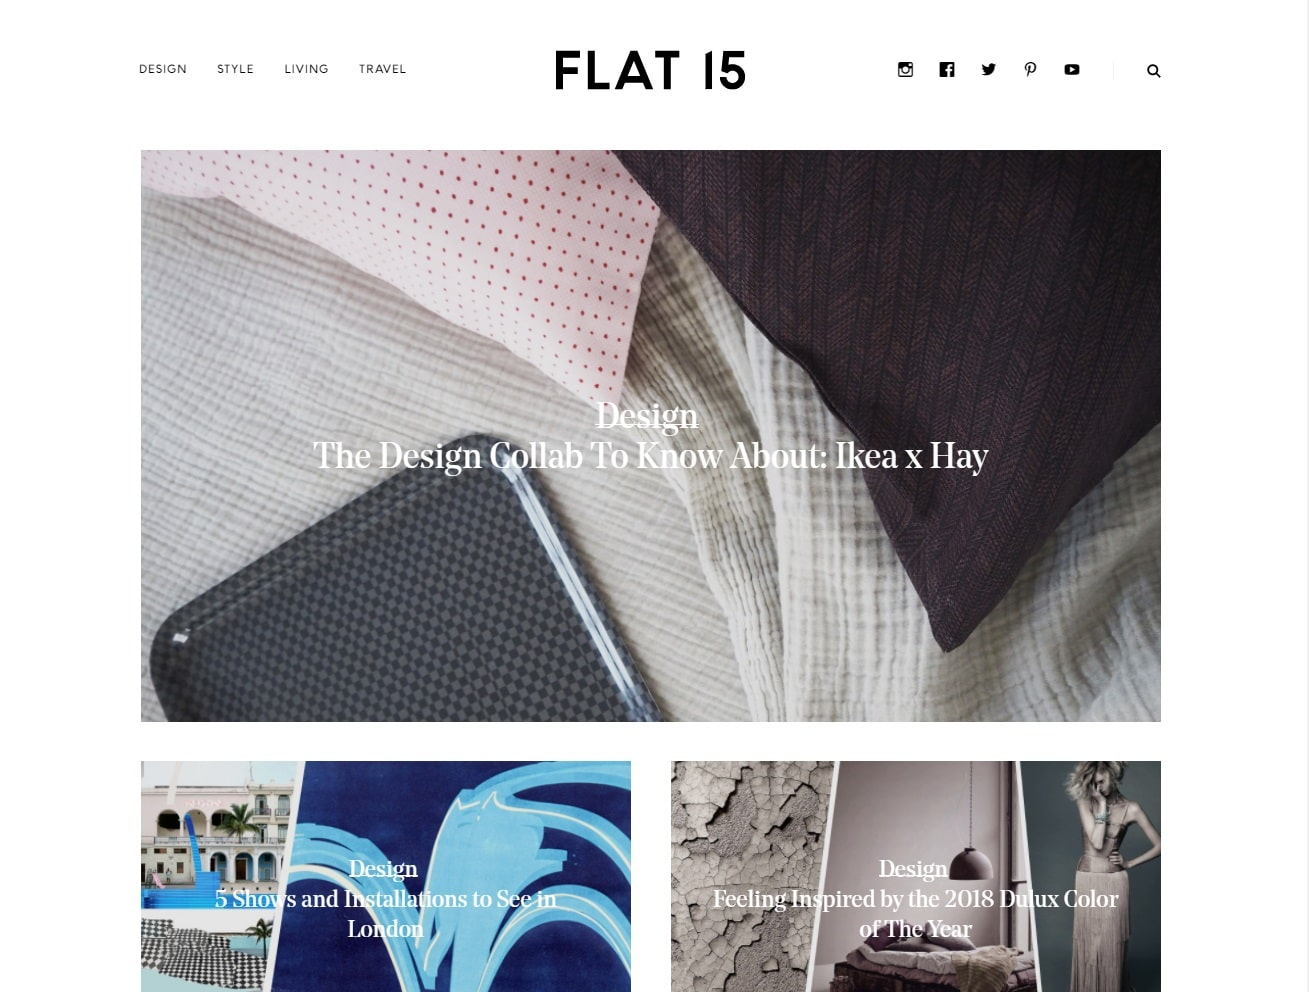 flat 15 best interior design blogs